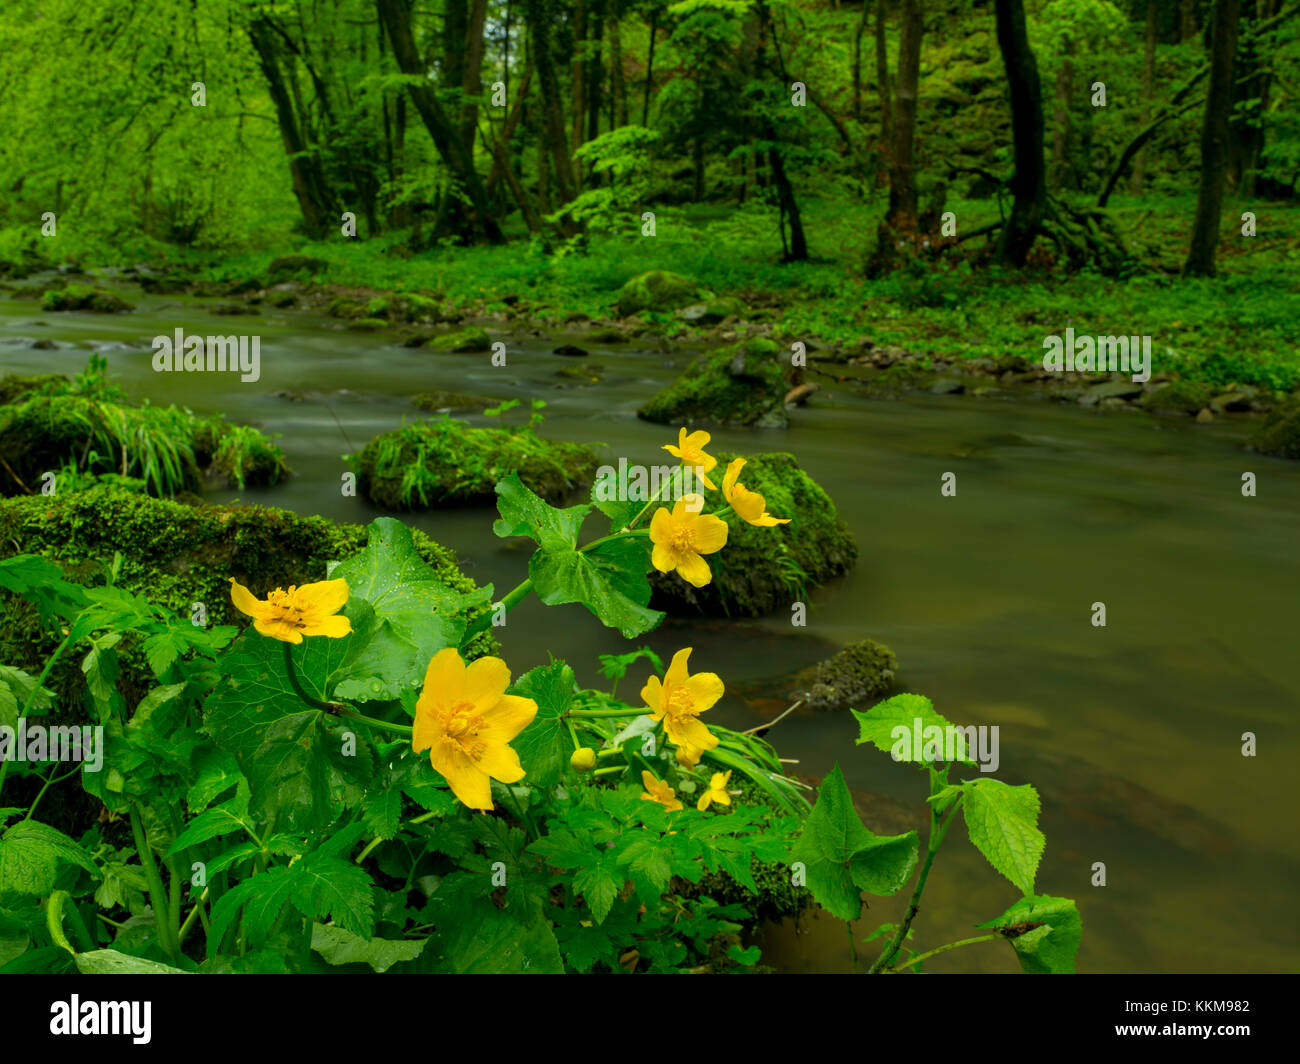 The Schlücht in the Schlüchttal, Black Forest, Baden-Wuerttemberg, Germany, Stock Photo